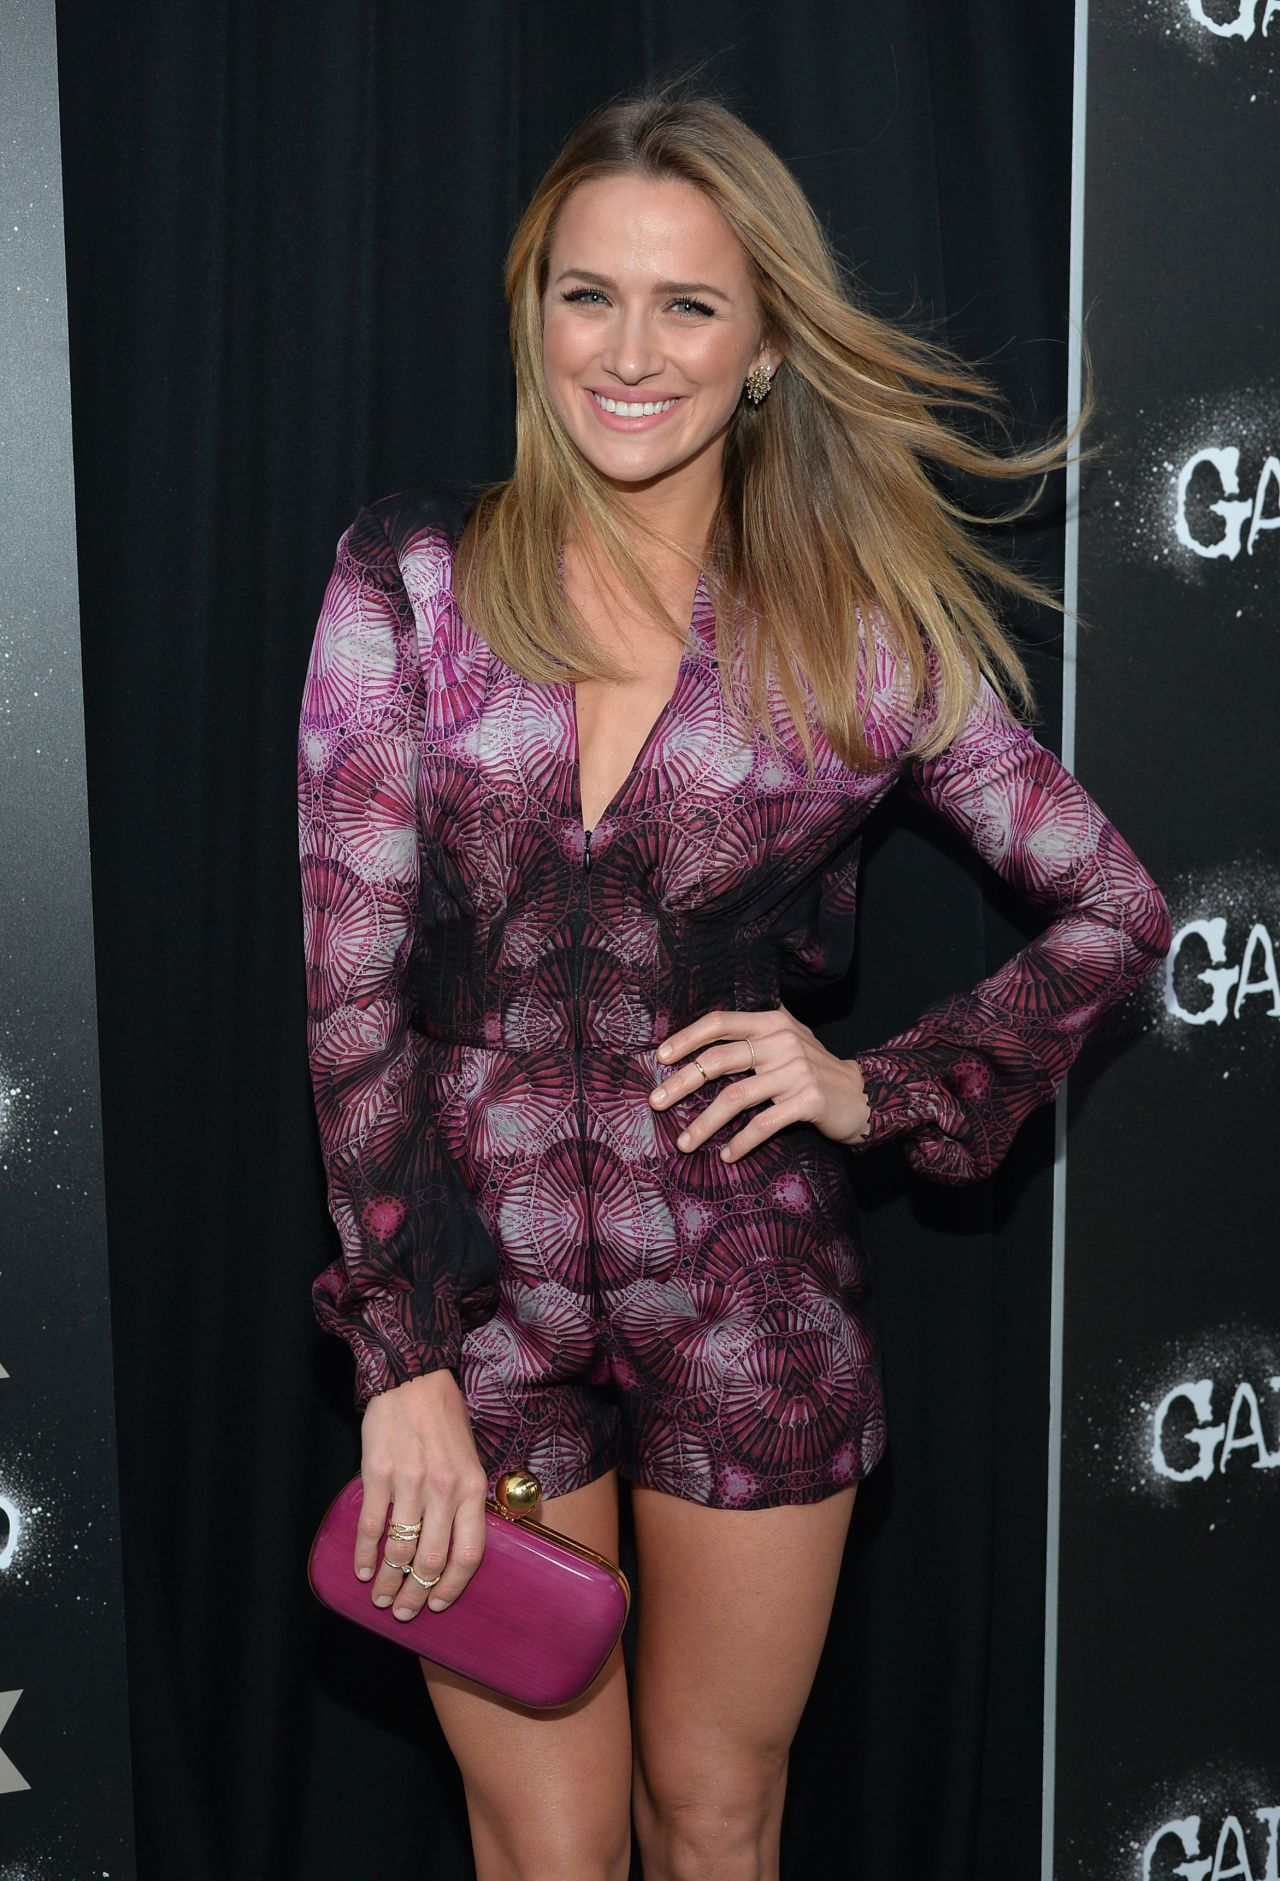 GANG RELATED Premiere in Los Angeles - Shantel Vansanten